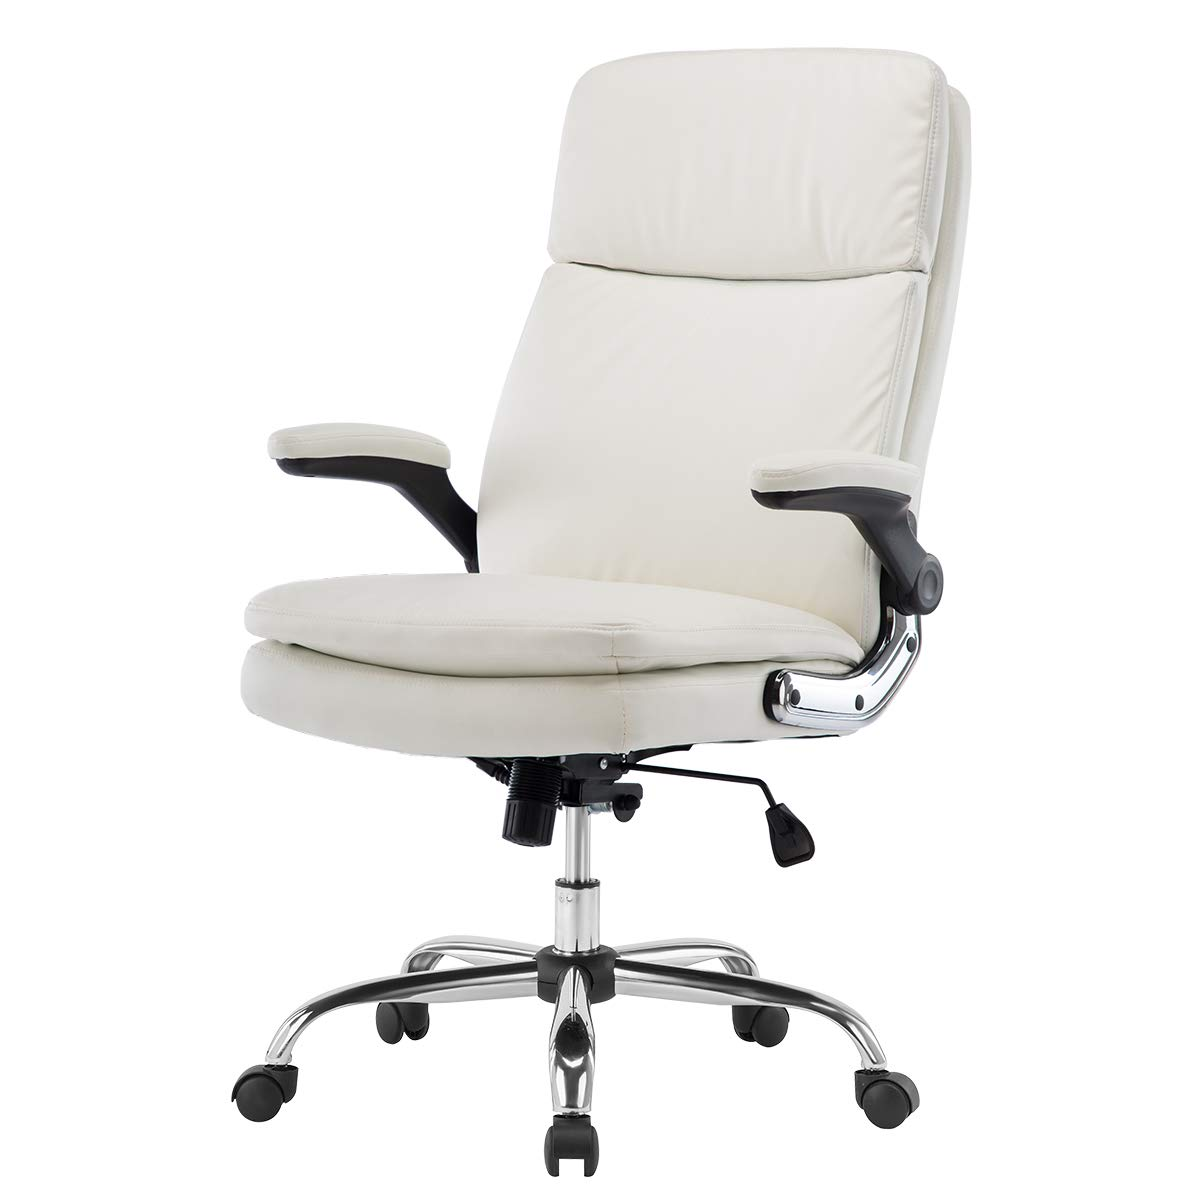 KERMS High Back PU Leather Executive Office Chair, Adjustable Recline Locking Flip-up Arms Computer Desk Chair, Thick Padding and Ergonomic Design for Lumbar Support White by KERMS